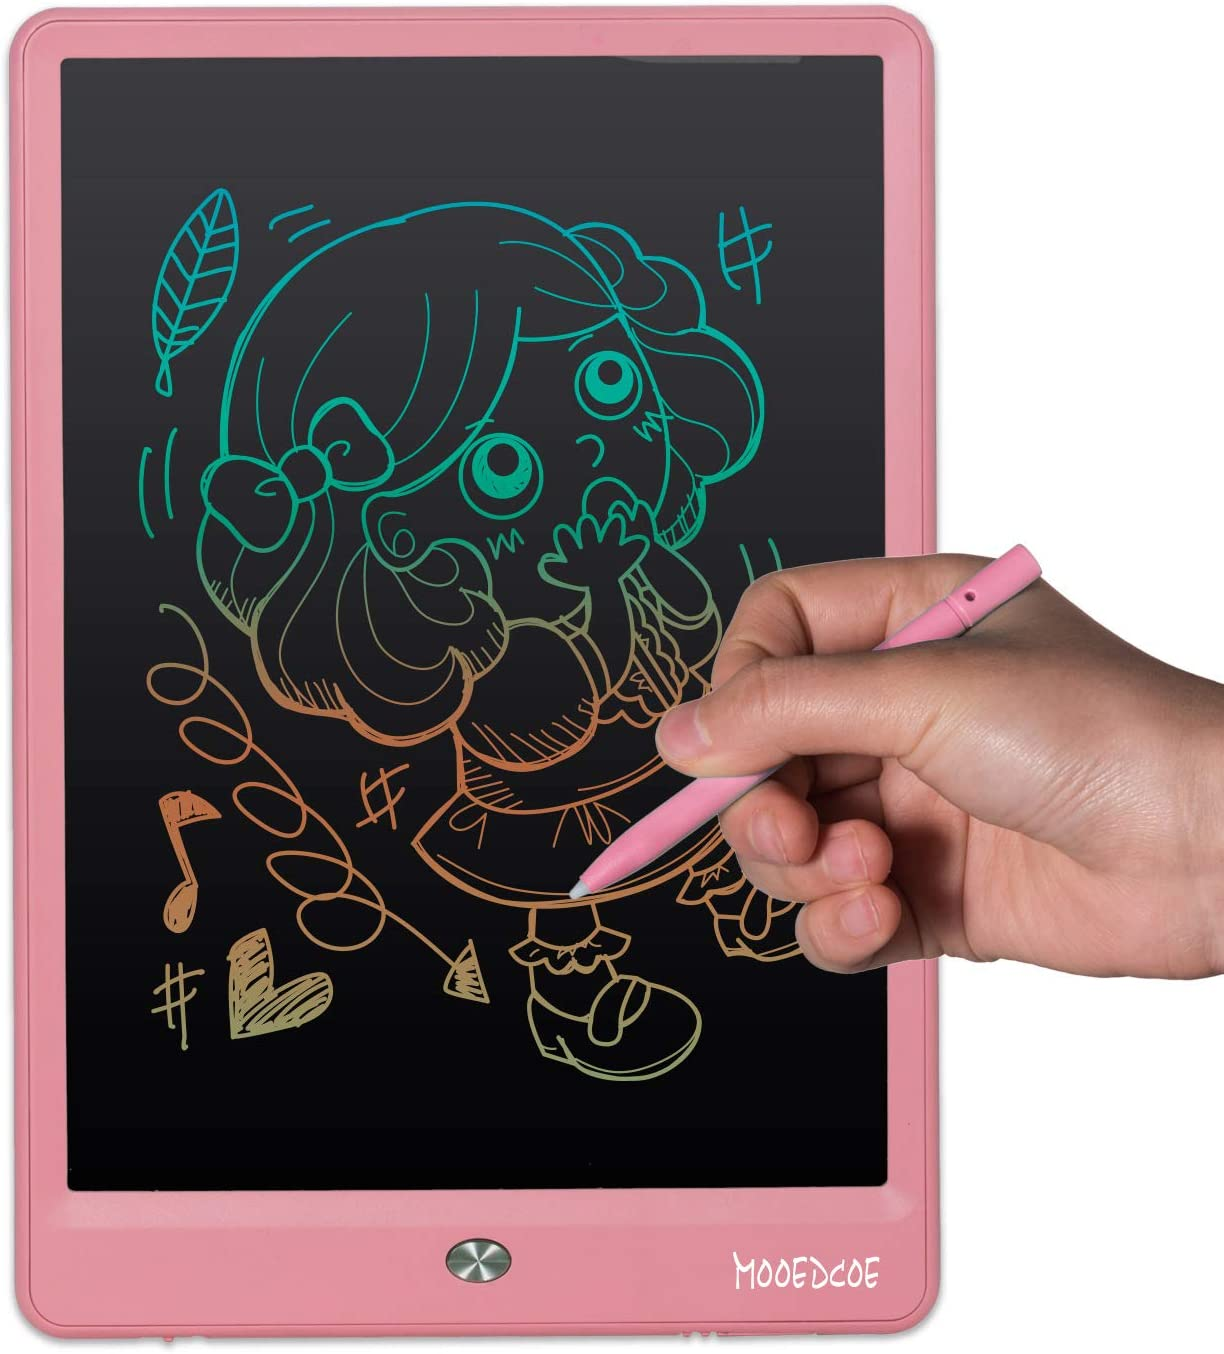 LCD Writing Tablet, Mooedcoe 10 inches LCD Drawing Tablet for Kids with Lockable Erase Button Digital Handwriting Pad Best Gift for Kids Using at Home, School (Pink)